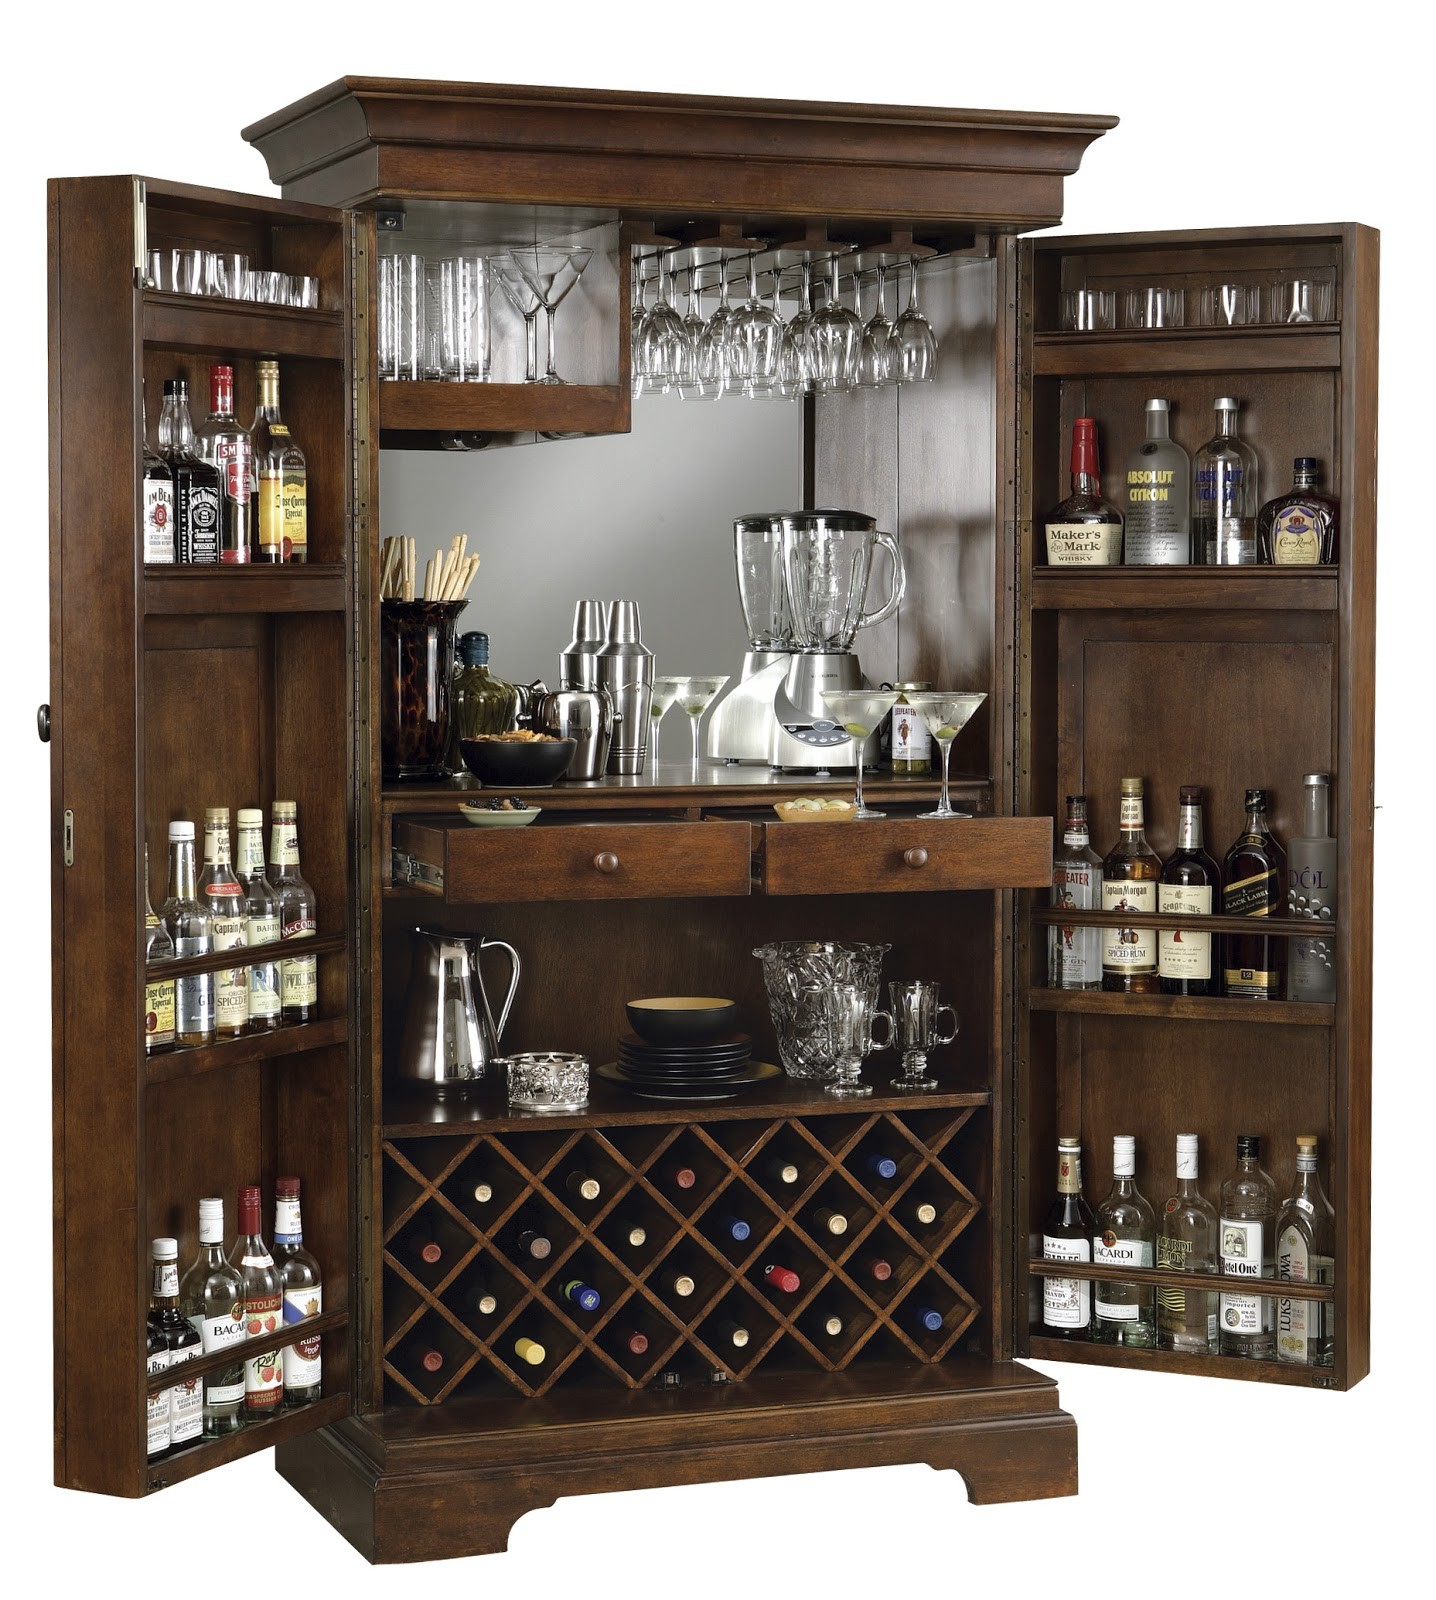 Home Bar Furniture: Expressions Of Time